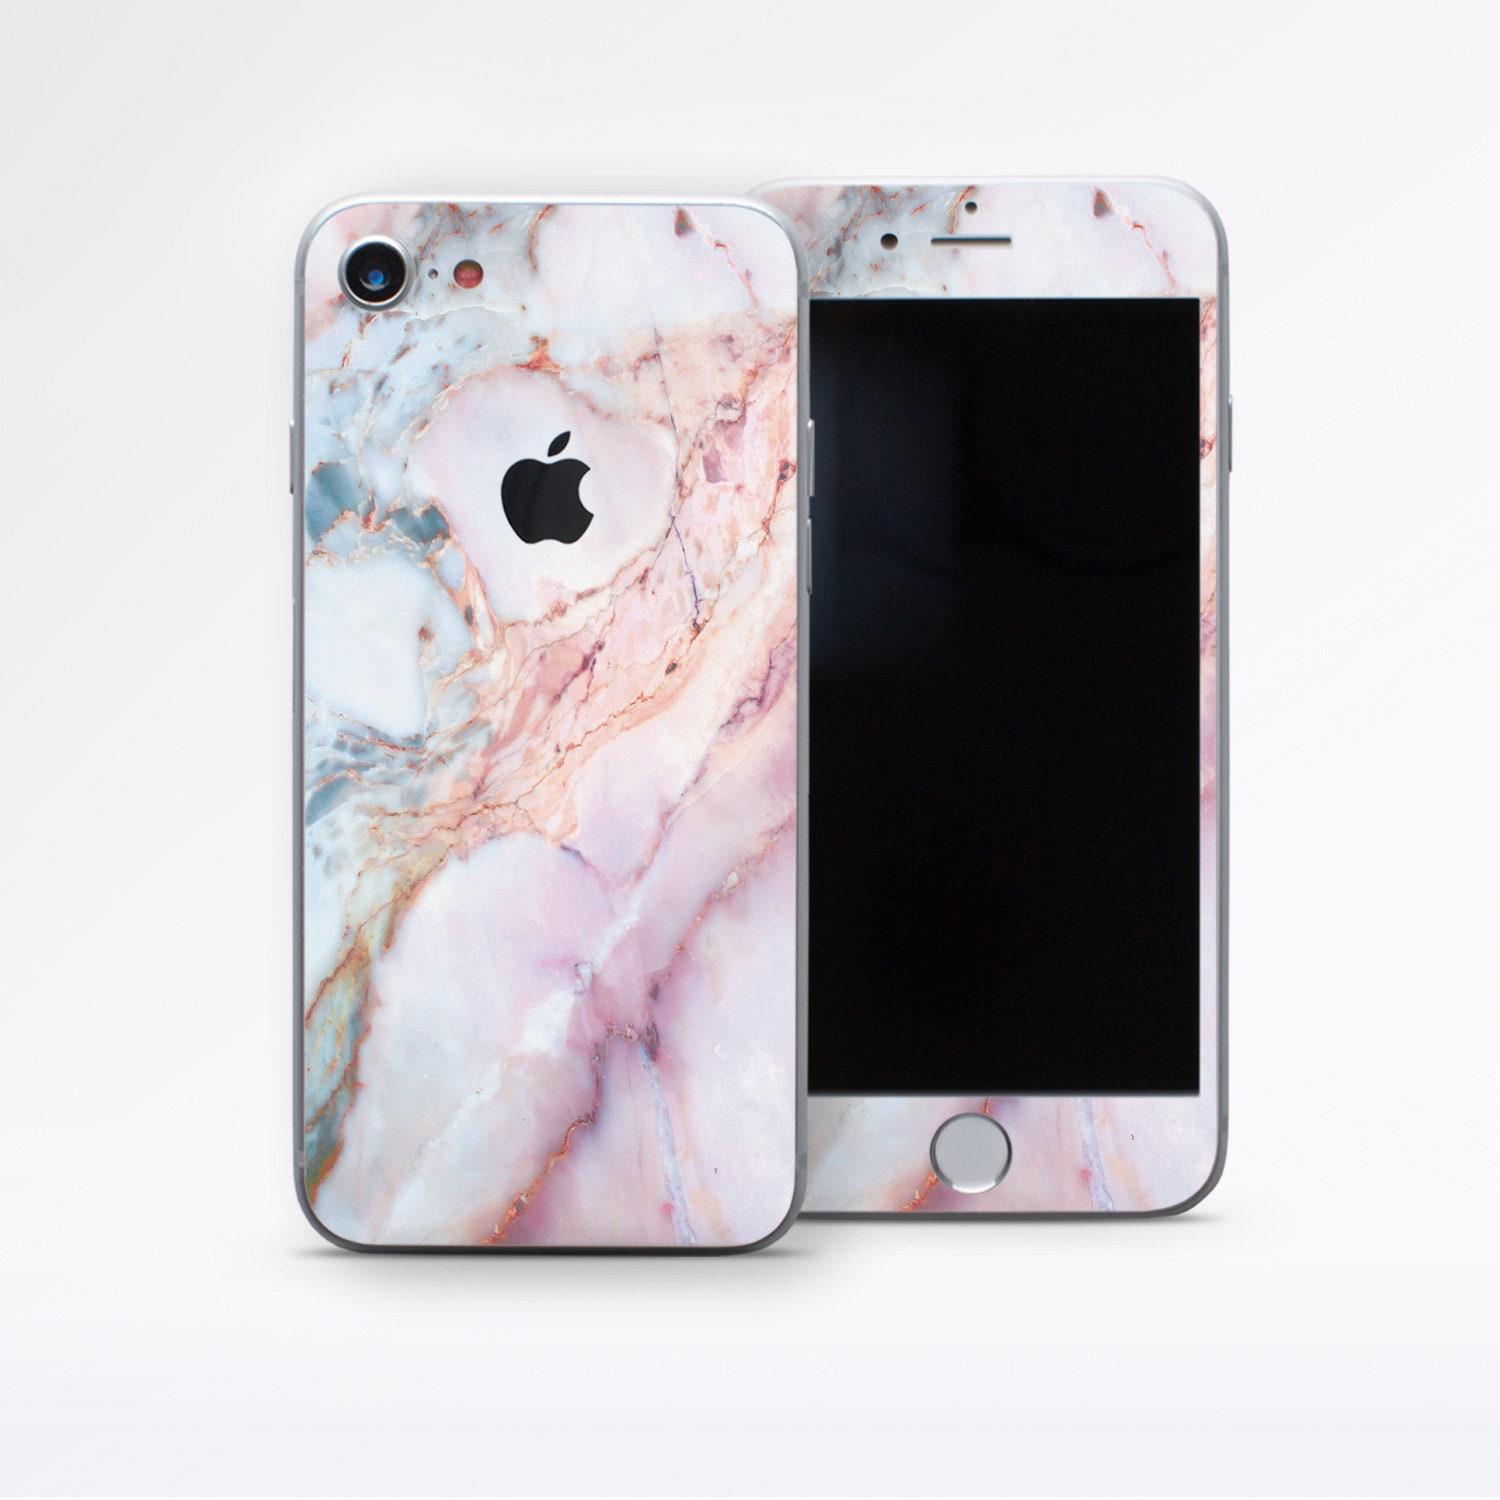 the latest 5c871 275ca iPhone Skin iPhone 6 Skin iPhone X Skin Pink Marble Decal IPhone 8 Plus  Sticker IPhone 7 Decal IPhone 6S Plus Skins IPhone SE Sticker DR3637